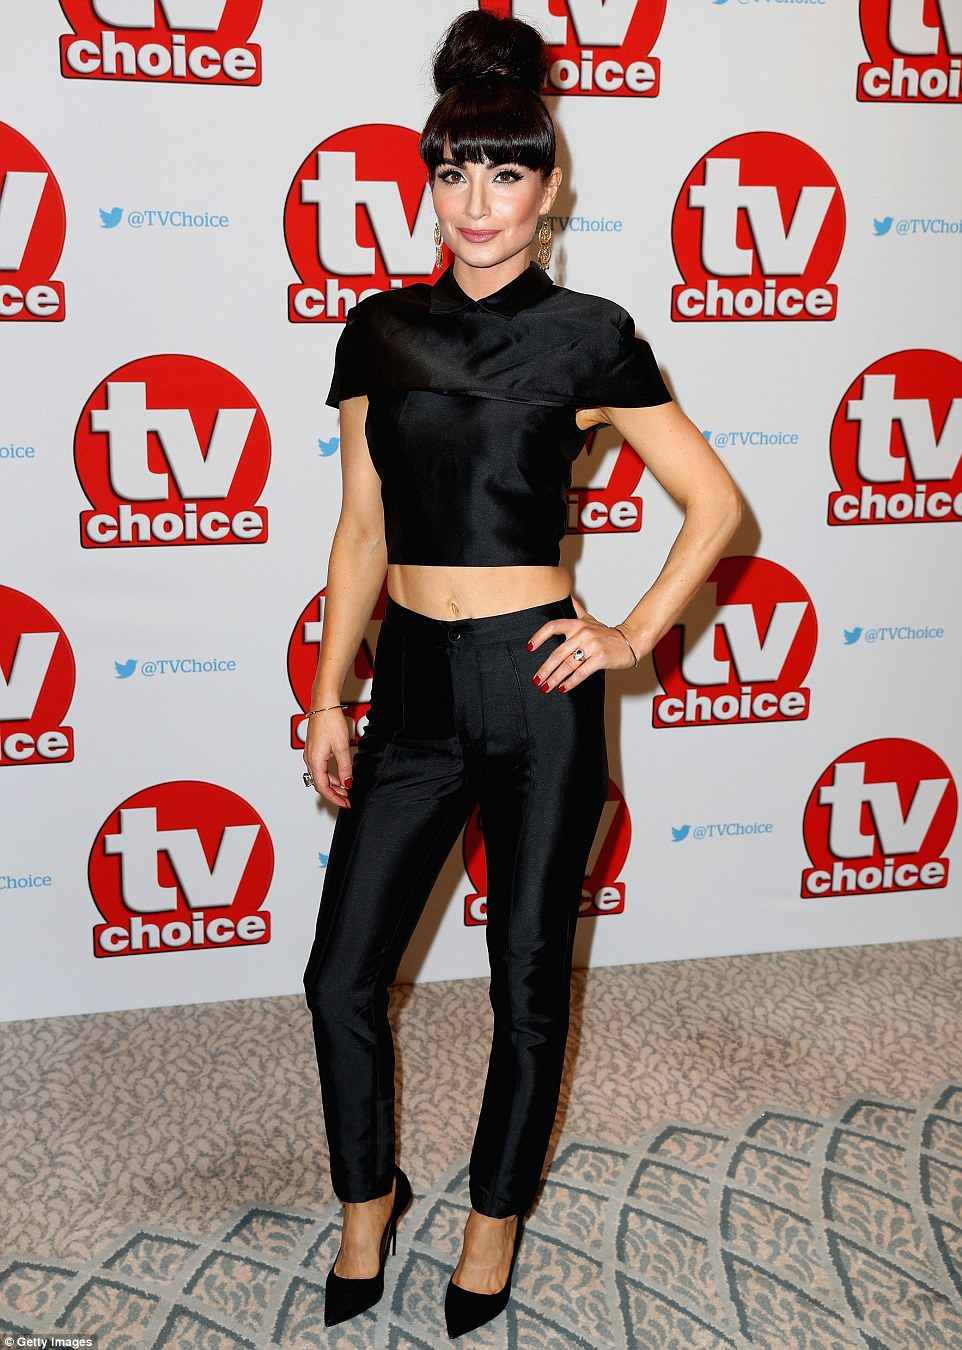 Village heart-breaker: Roxy Shahidi arrived in a skin-tight black ensemble, flashing her taut tummy as she stunned on the red carpet